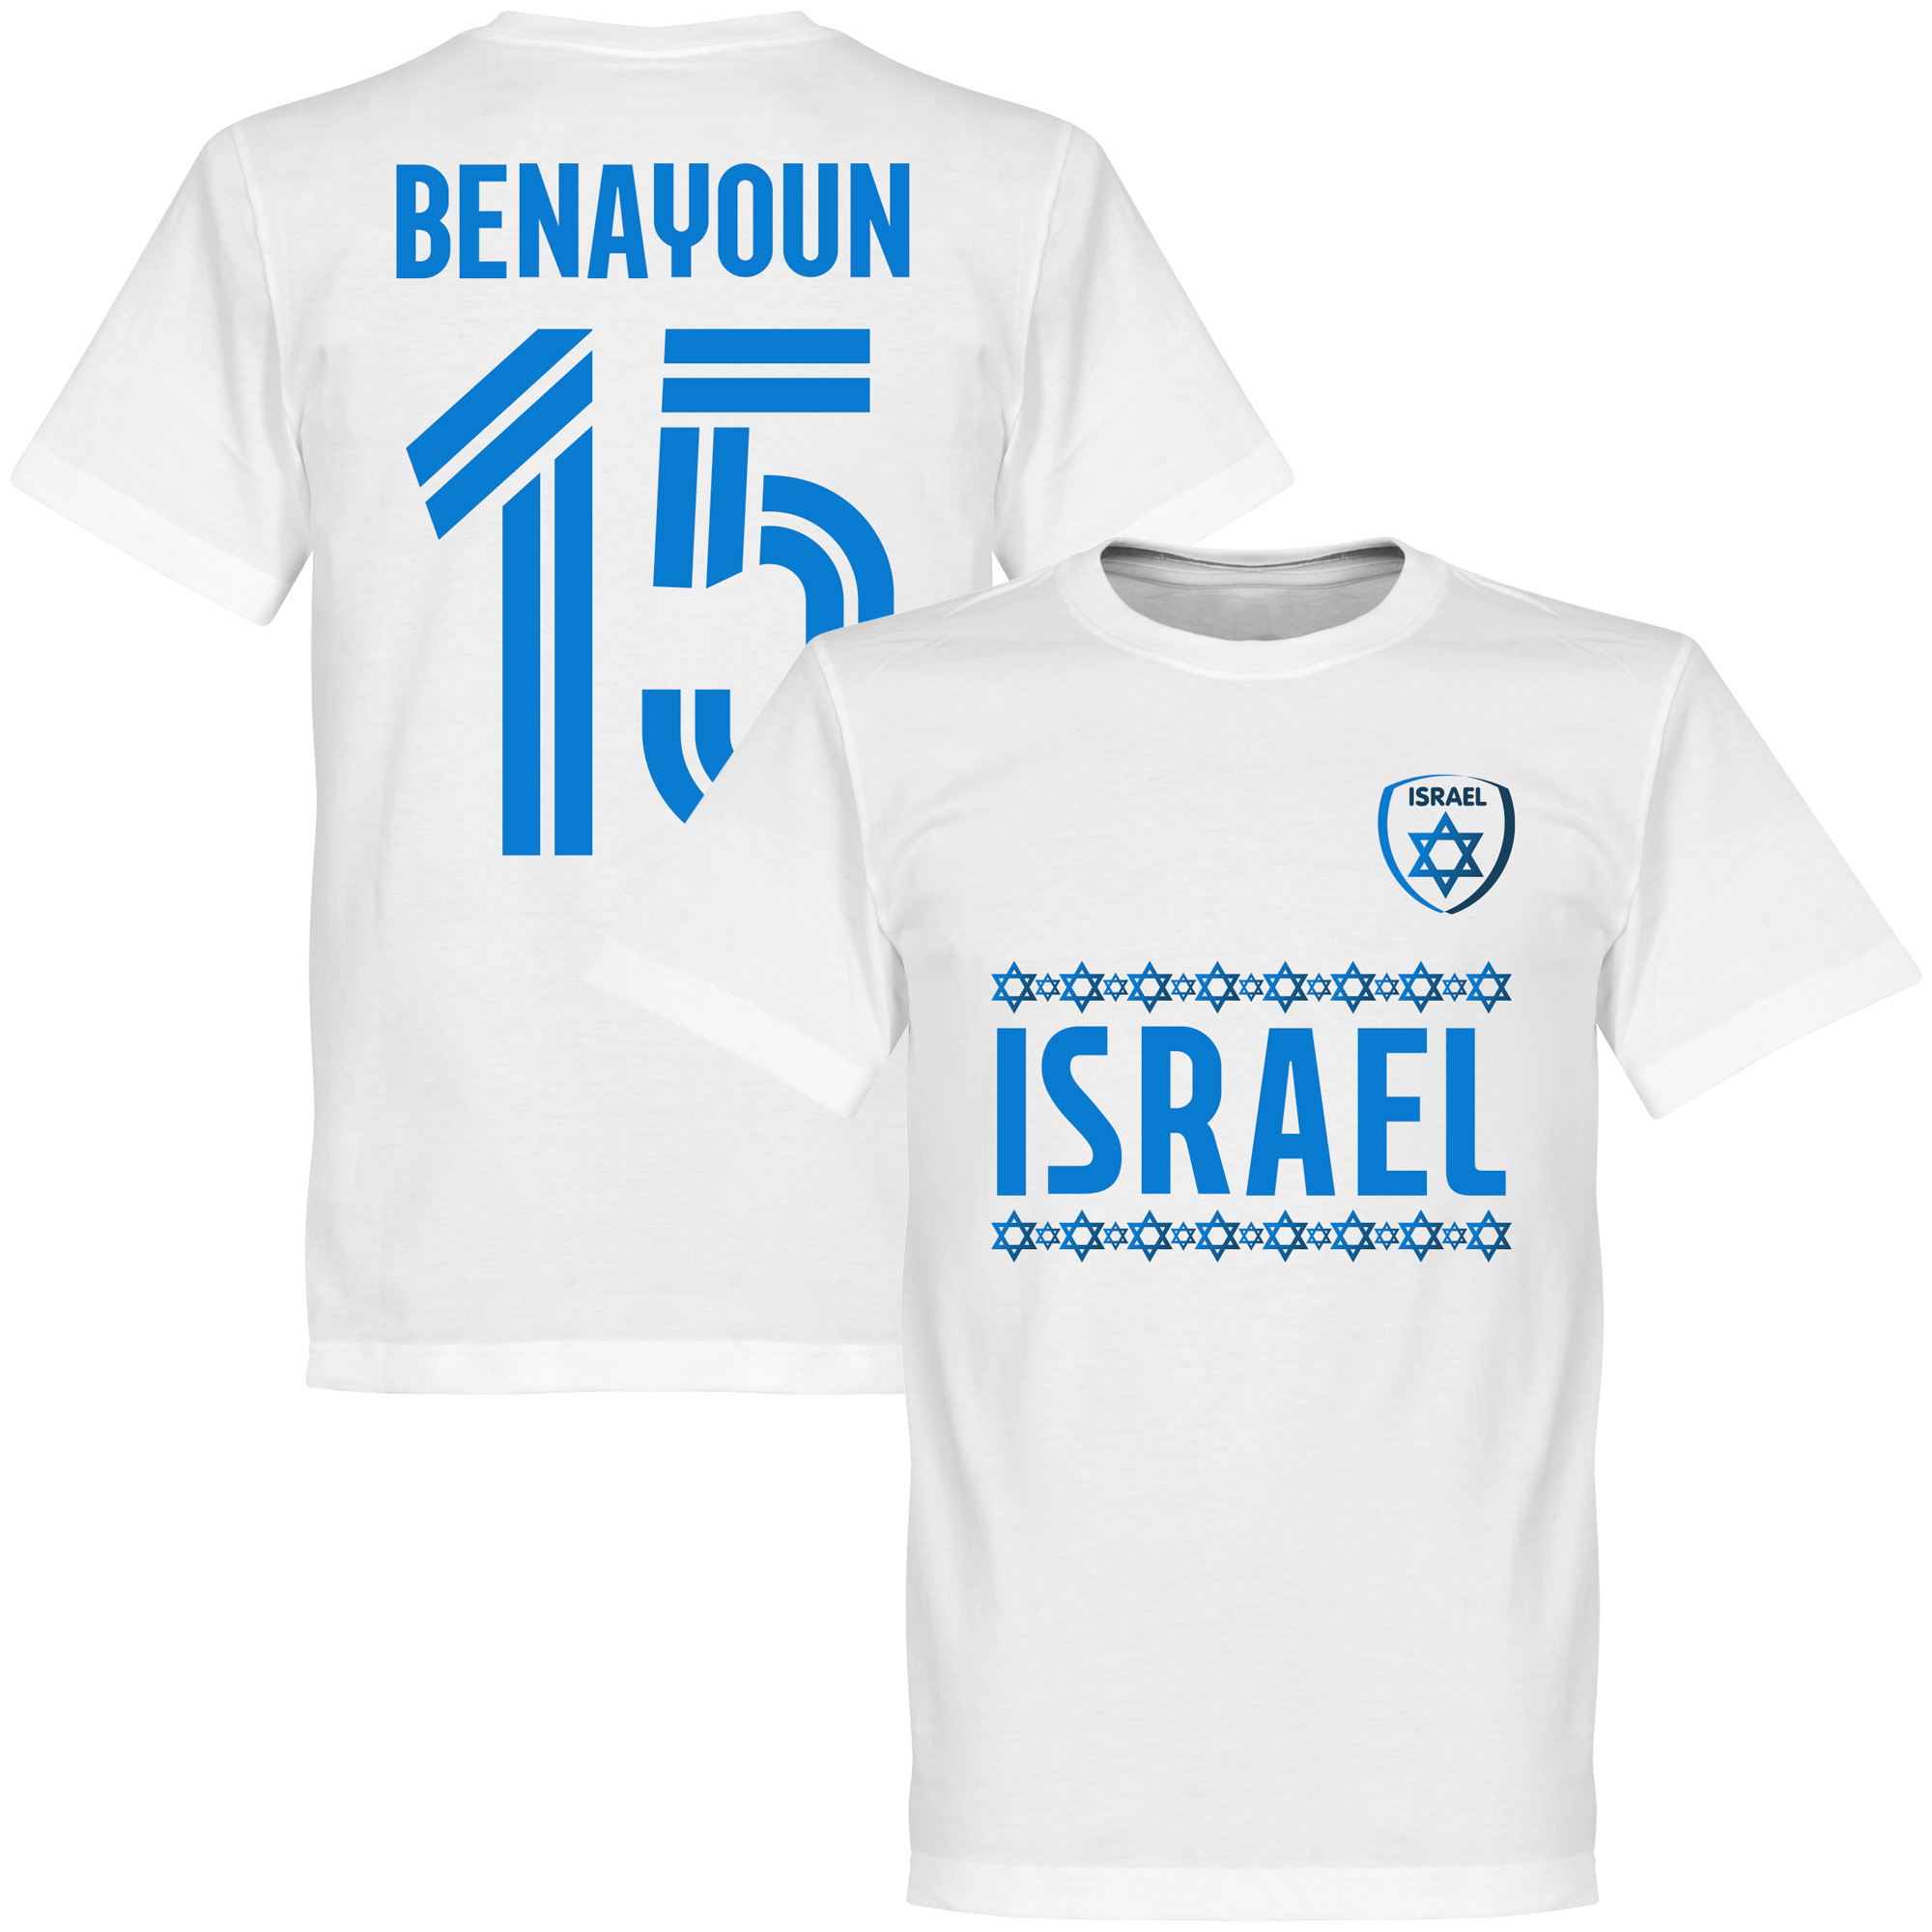 Israel Benayoun Team Tee - White - XL